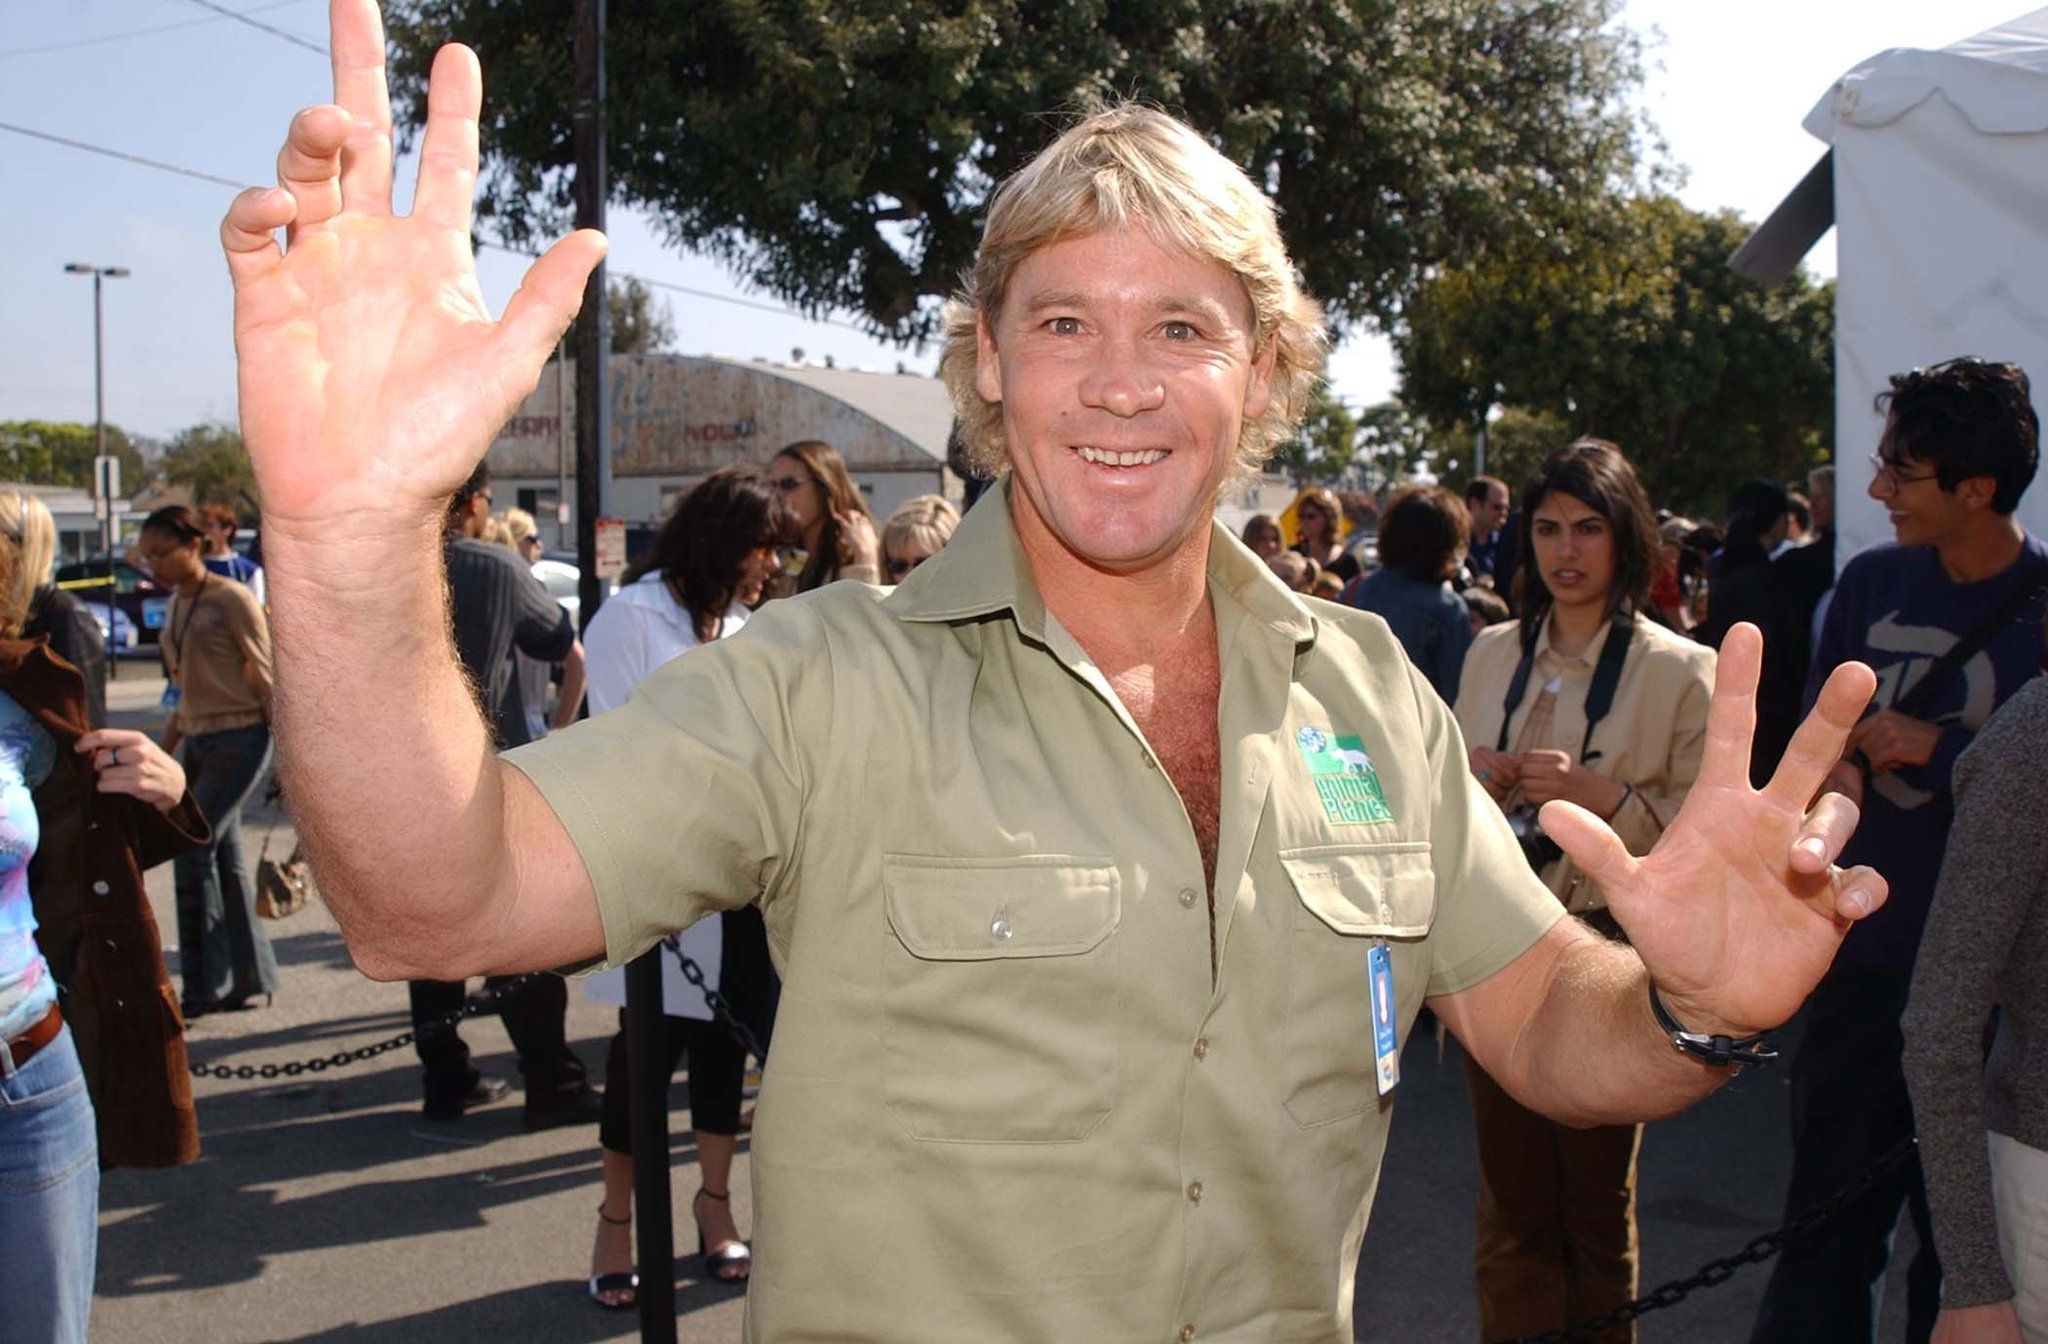 The Details About Steve Irwin's Tragic Death Will Still Make You Uneasy